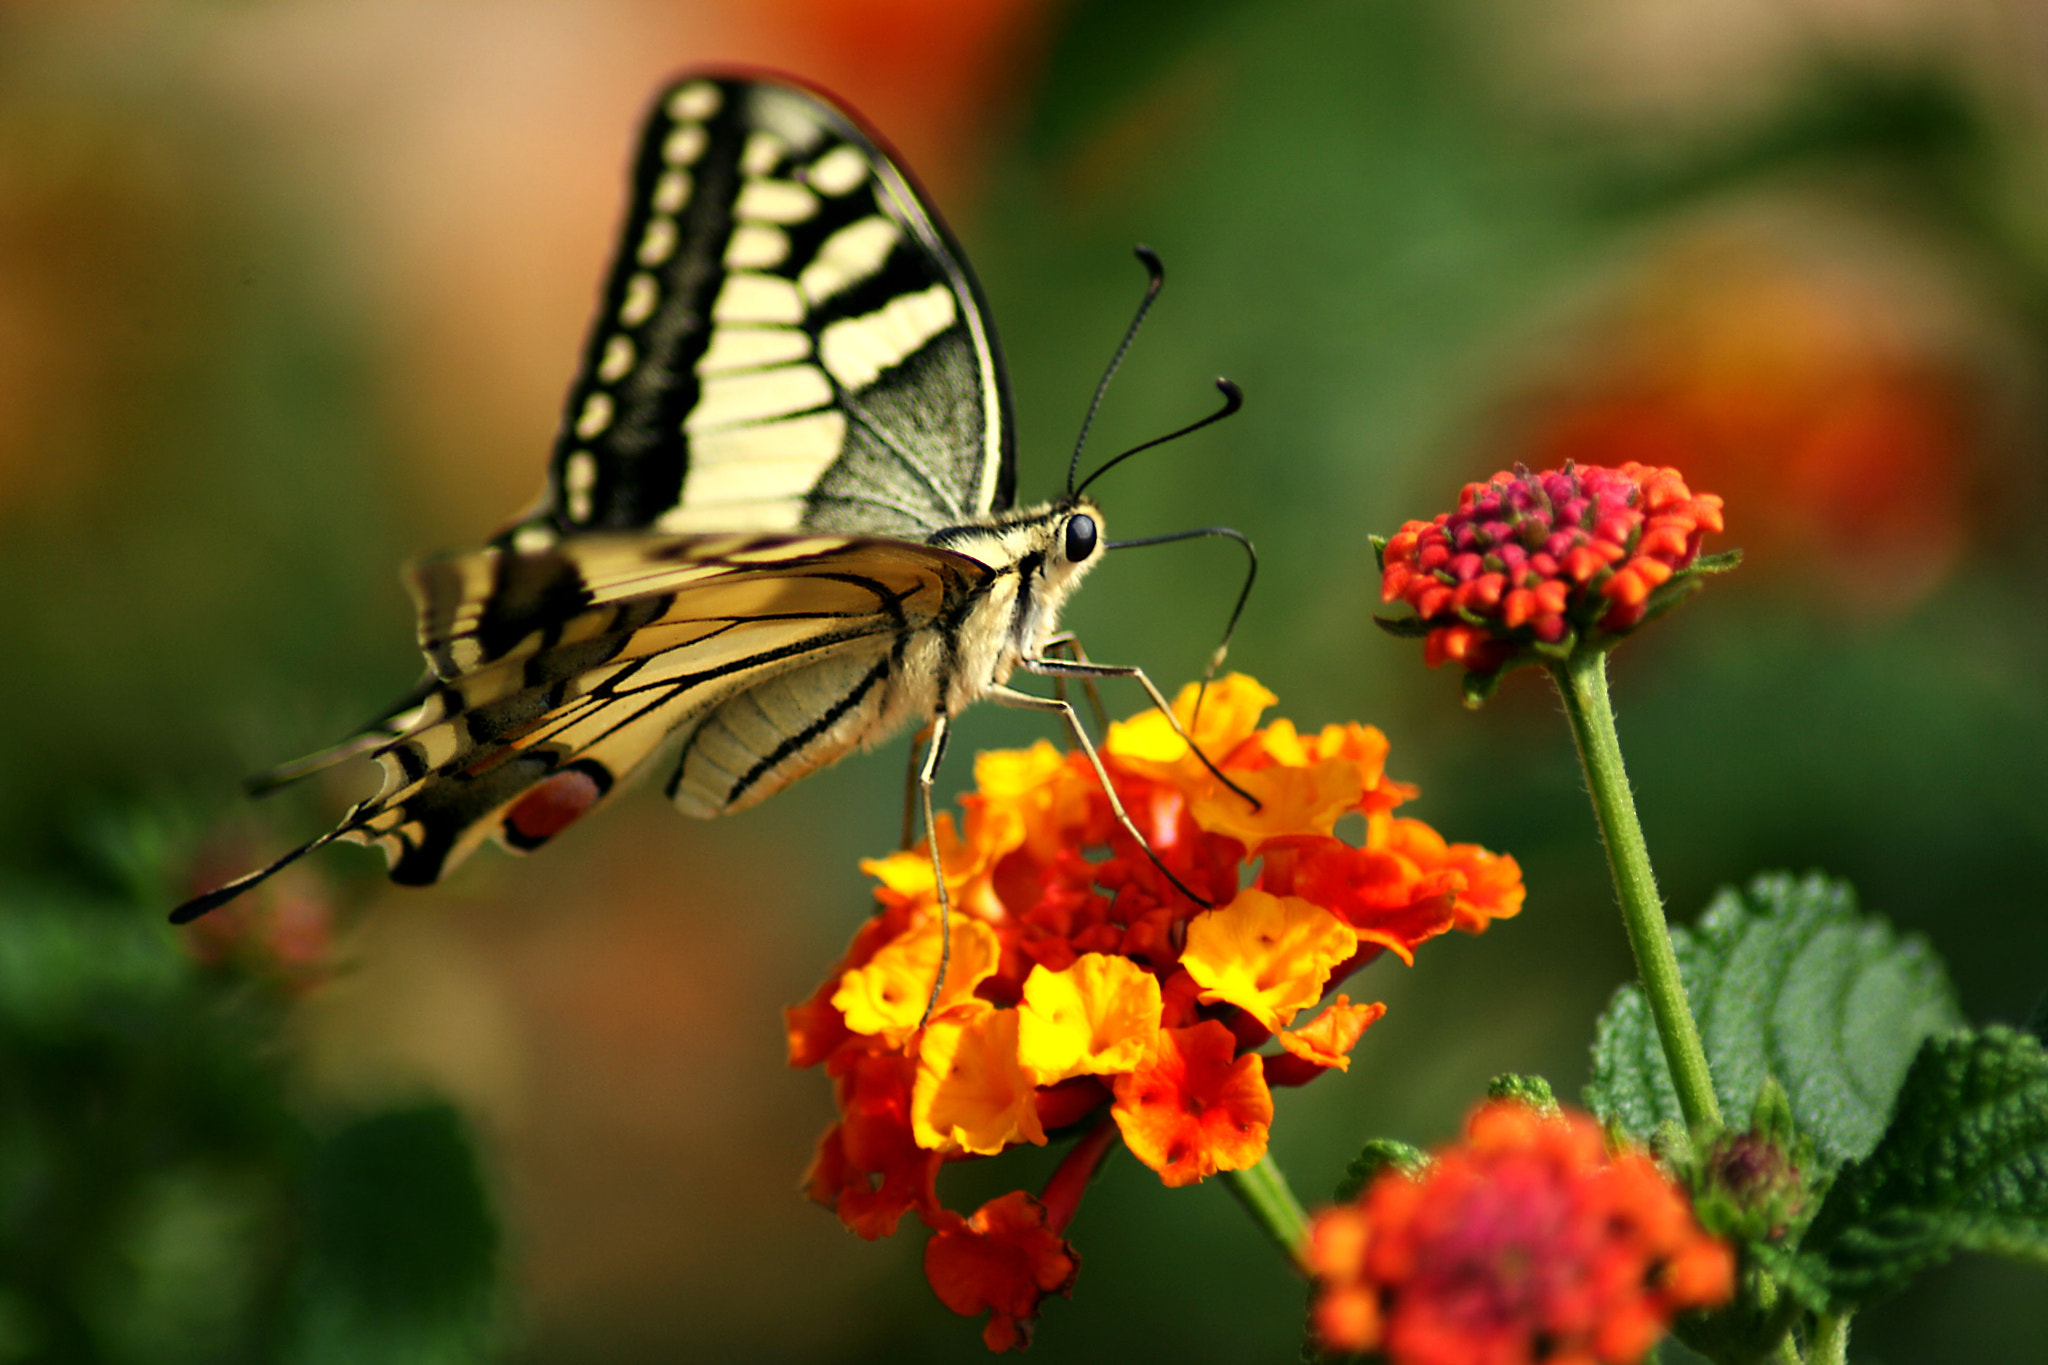 Photograph Buterfly by Jaime VilchesFD on 500px